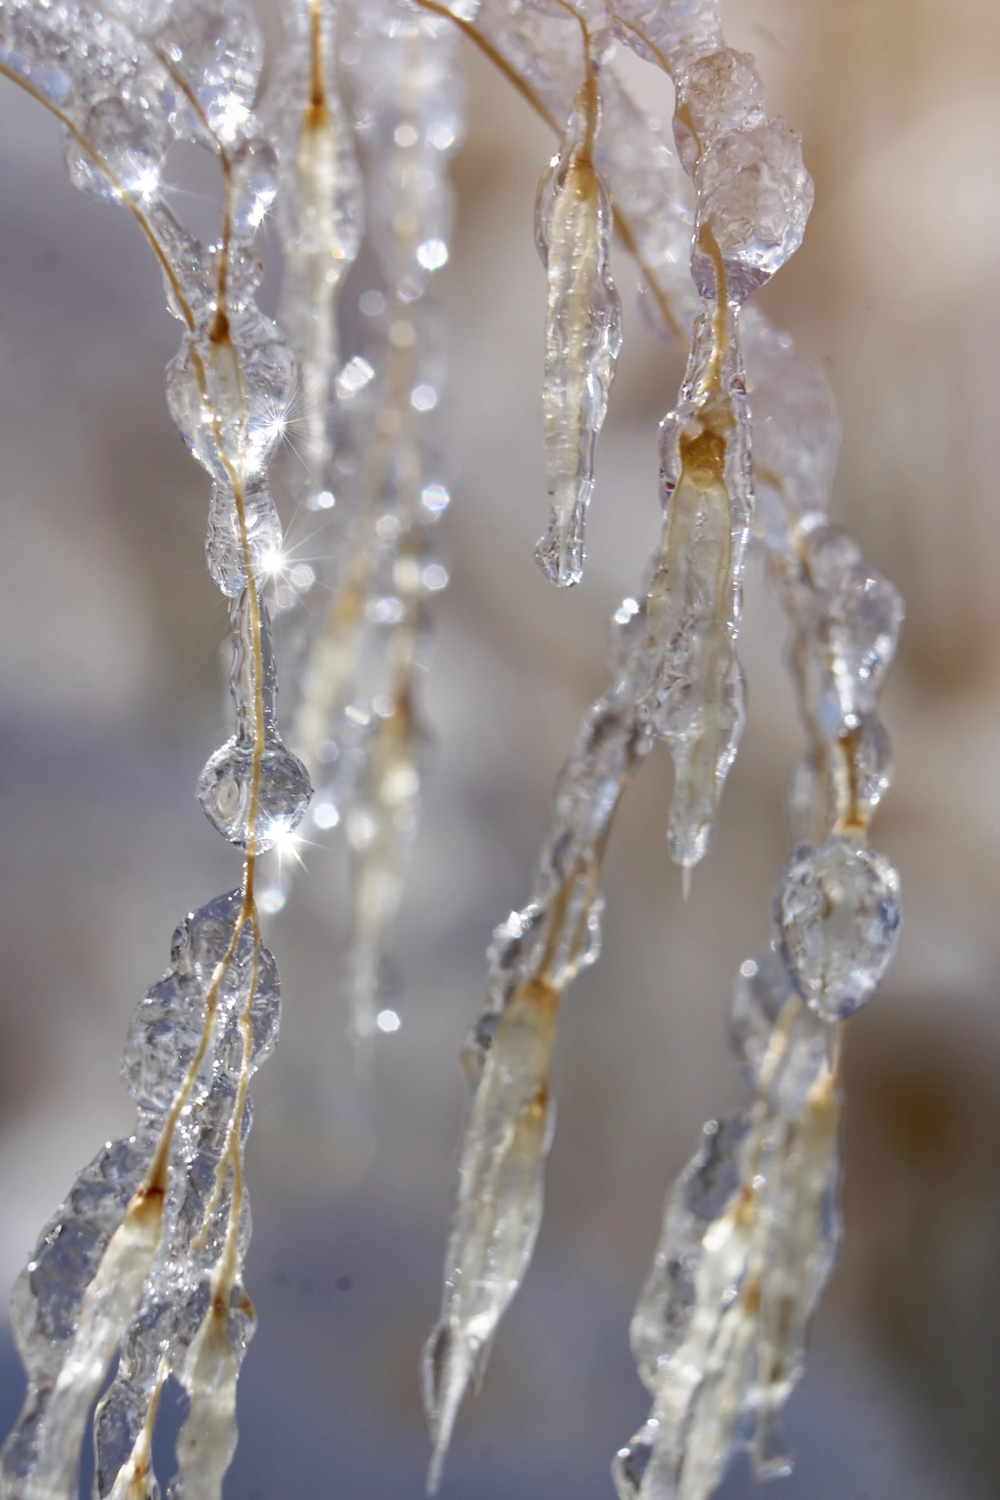 The Wonders of Winter -  frosted ice crystals covering grass with bokeh sparkles... -    The Wonders of Winter –  frosted ice crystals covering grass with bokeh sparkles. Enjoy these macro photos and winter quotes of the wonders, awe, and magic of winter.  The Wonders of Winter –  frosted ice crystals covering grass with bokeh sparkles…  Reverie . knottedflowers Winter Wonderland :: Tomten & Ice The Wonders of Winter –  frosted ice crystals covering grass with bokeh sparkles. Enjoy these macro